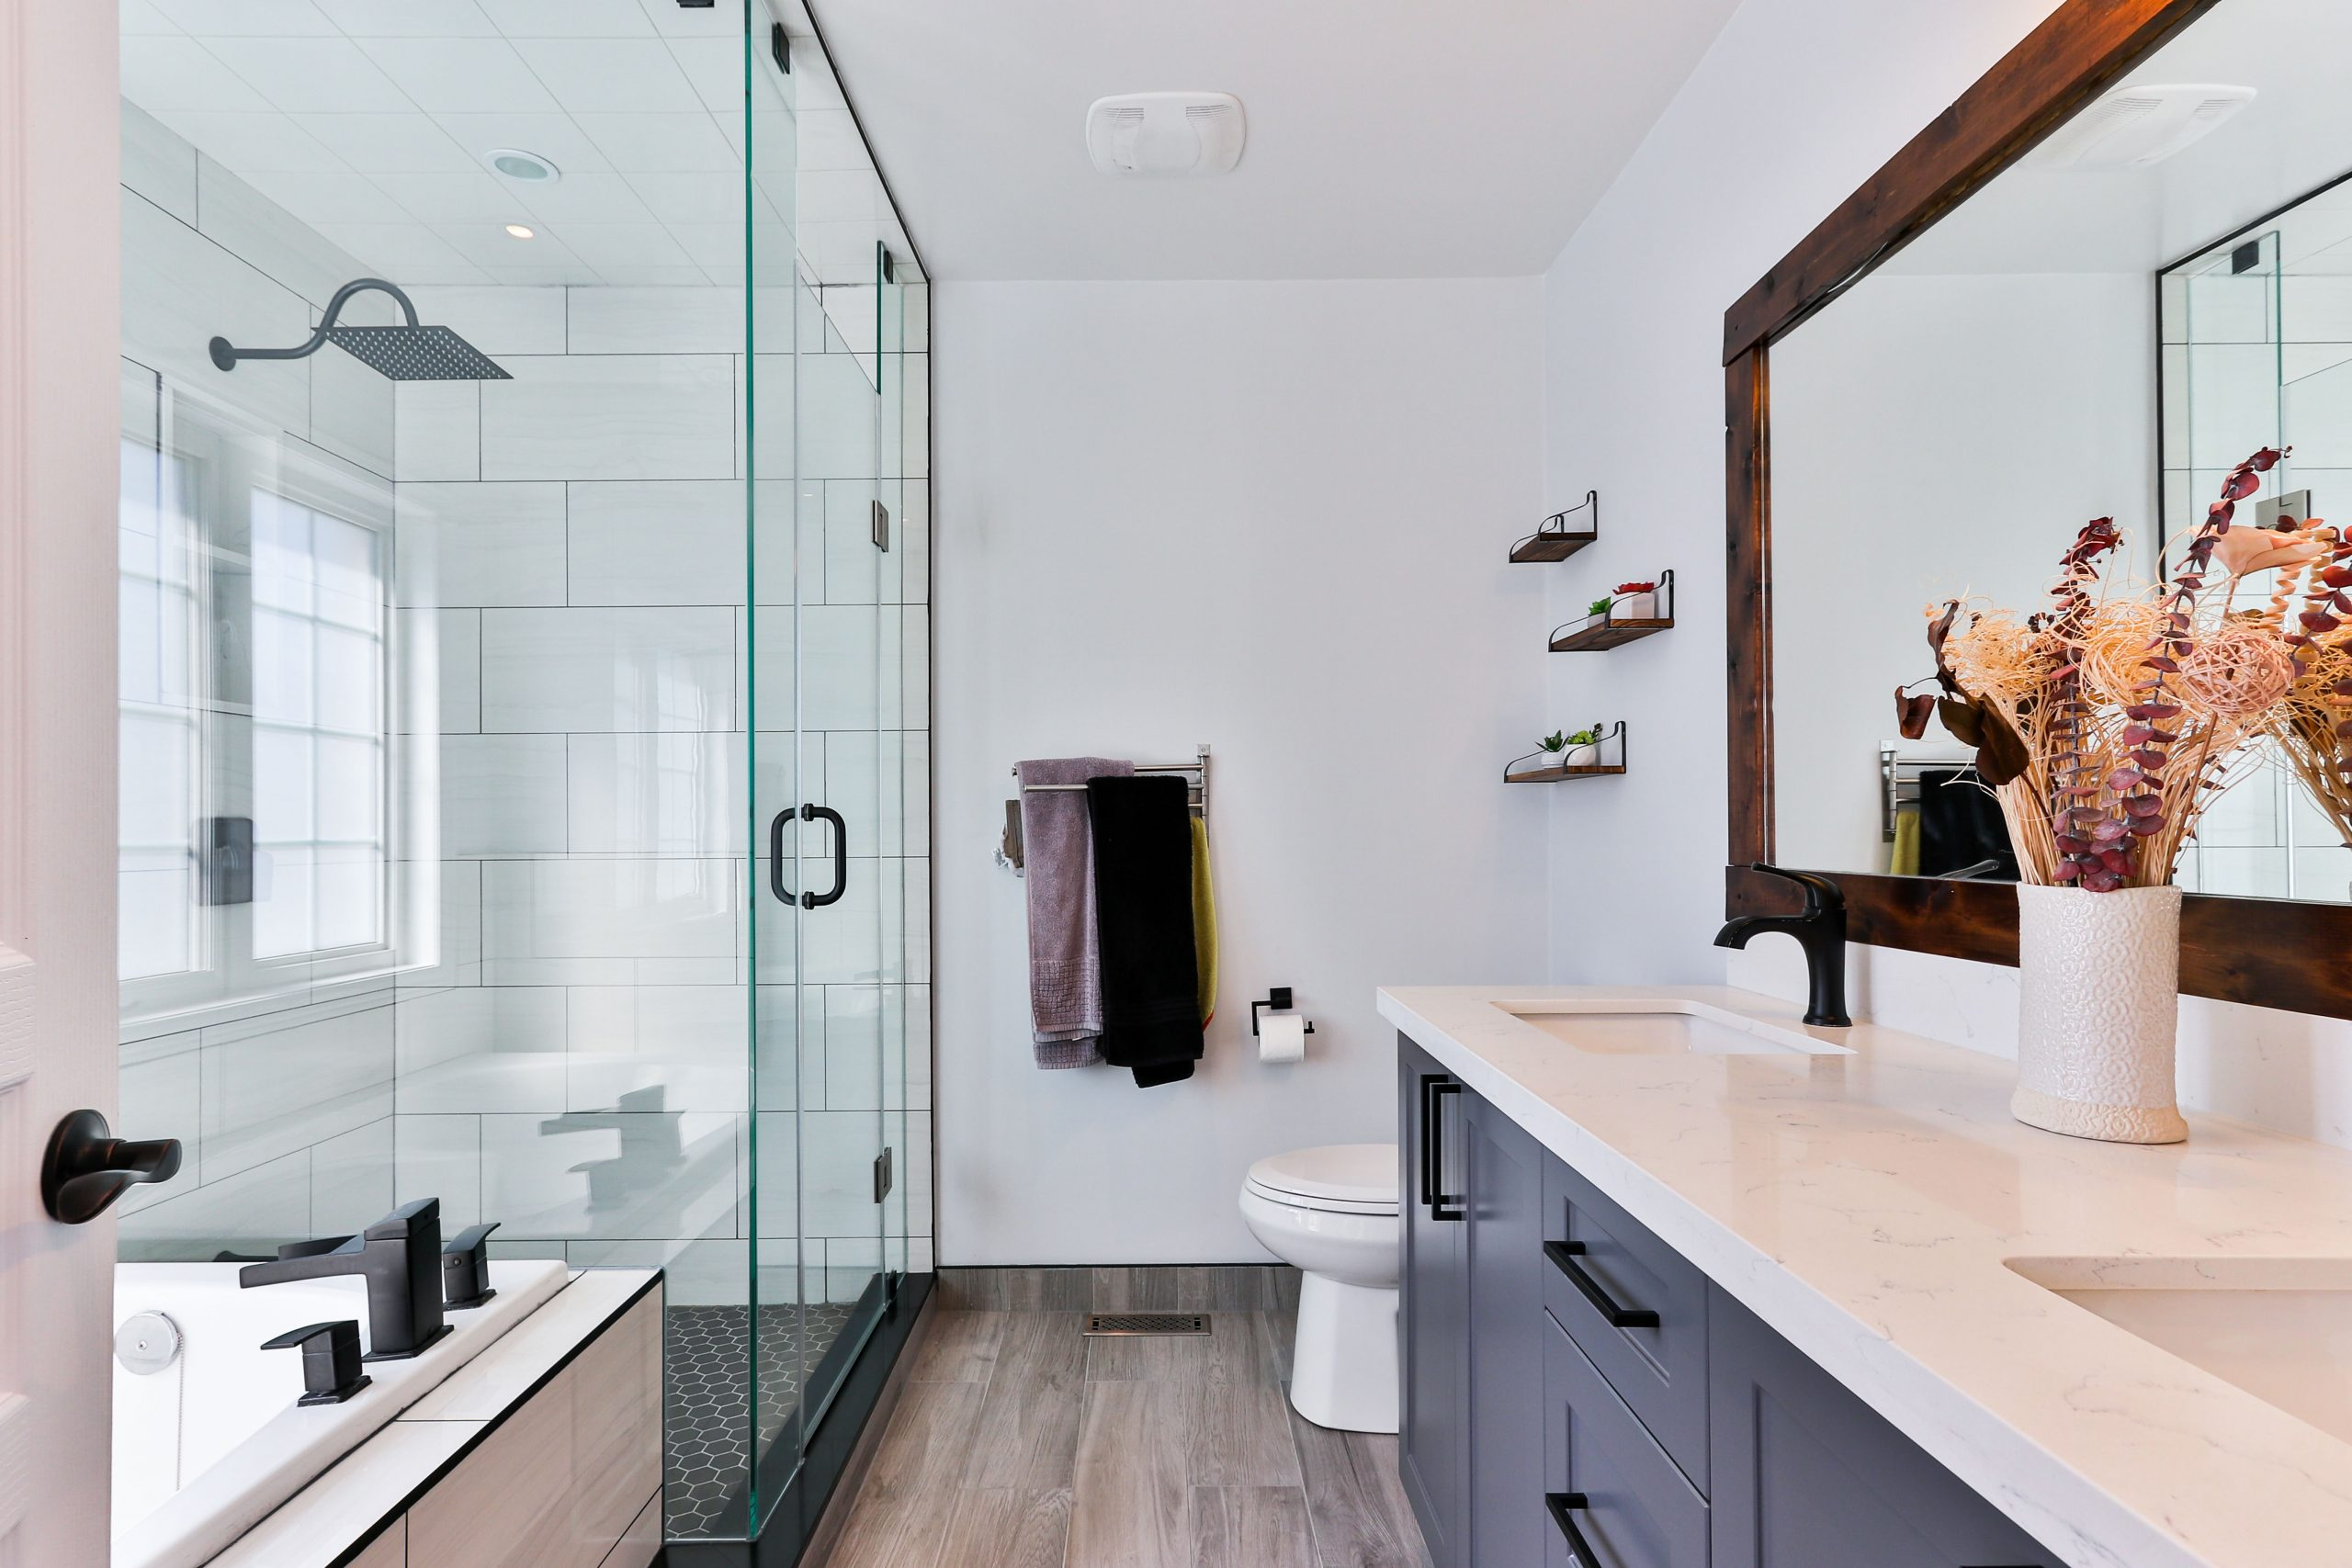 Make Your Bathroom Floors Safer & Convenient With Vinyl